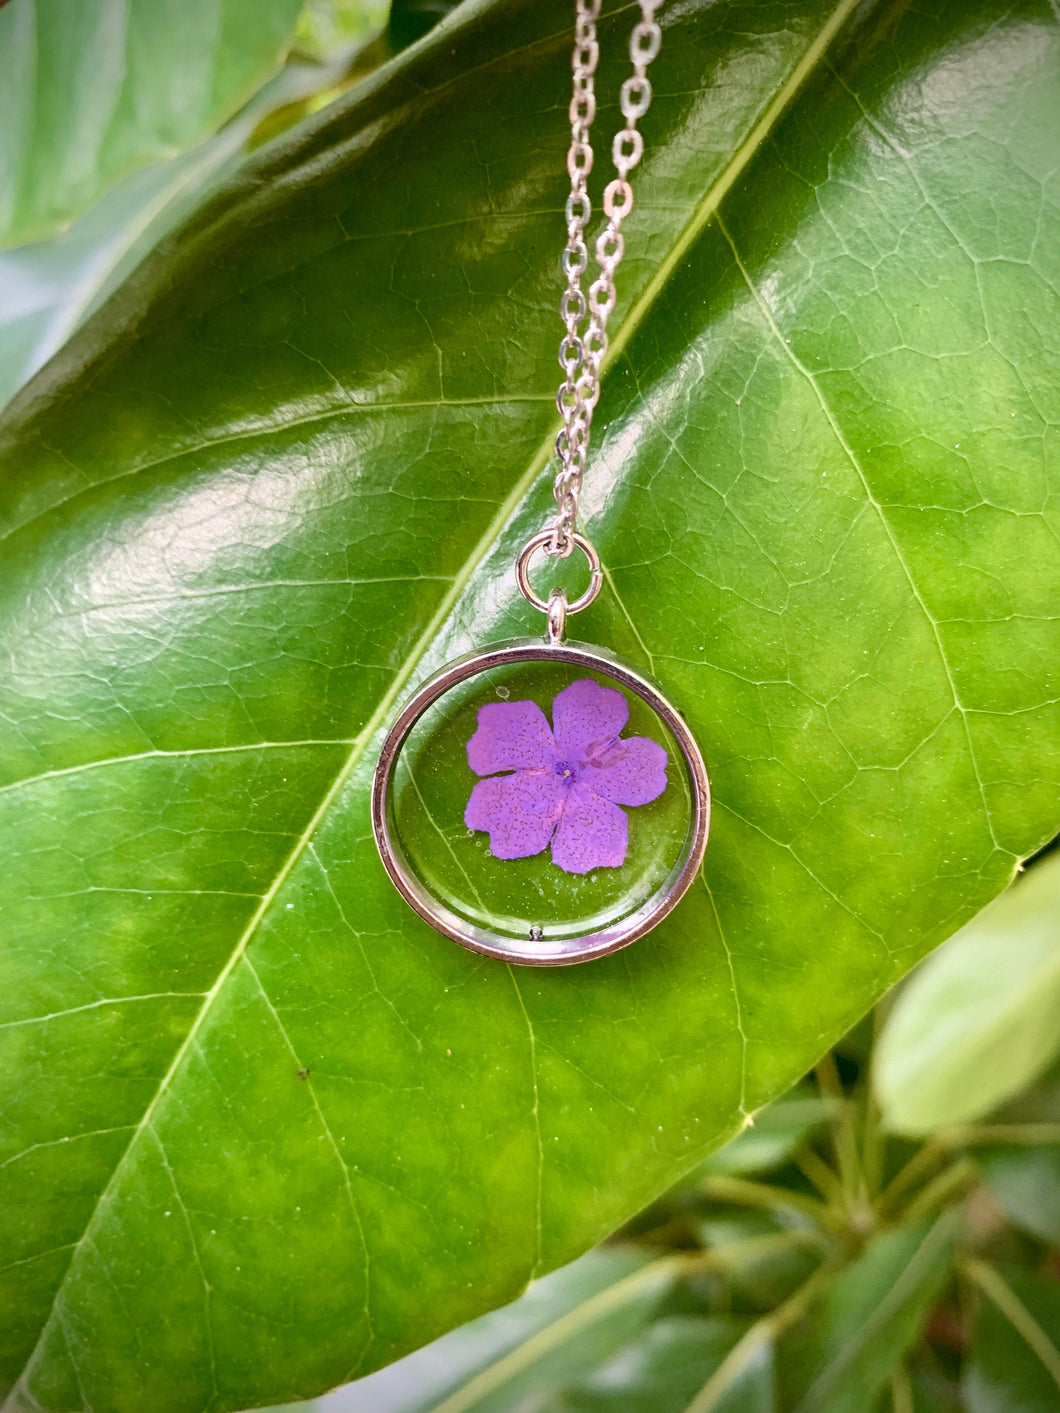 Circular silver pendant with purple pressed flower